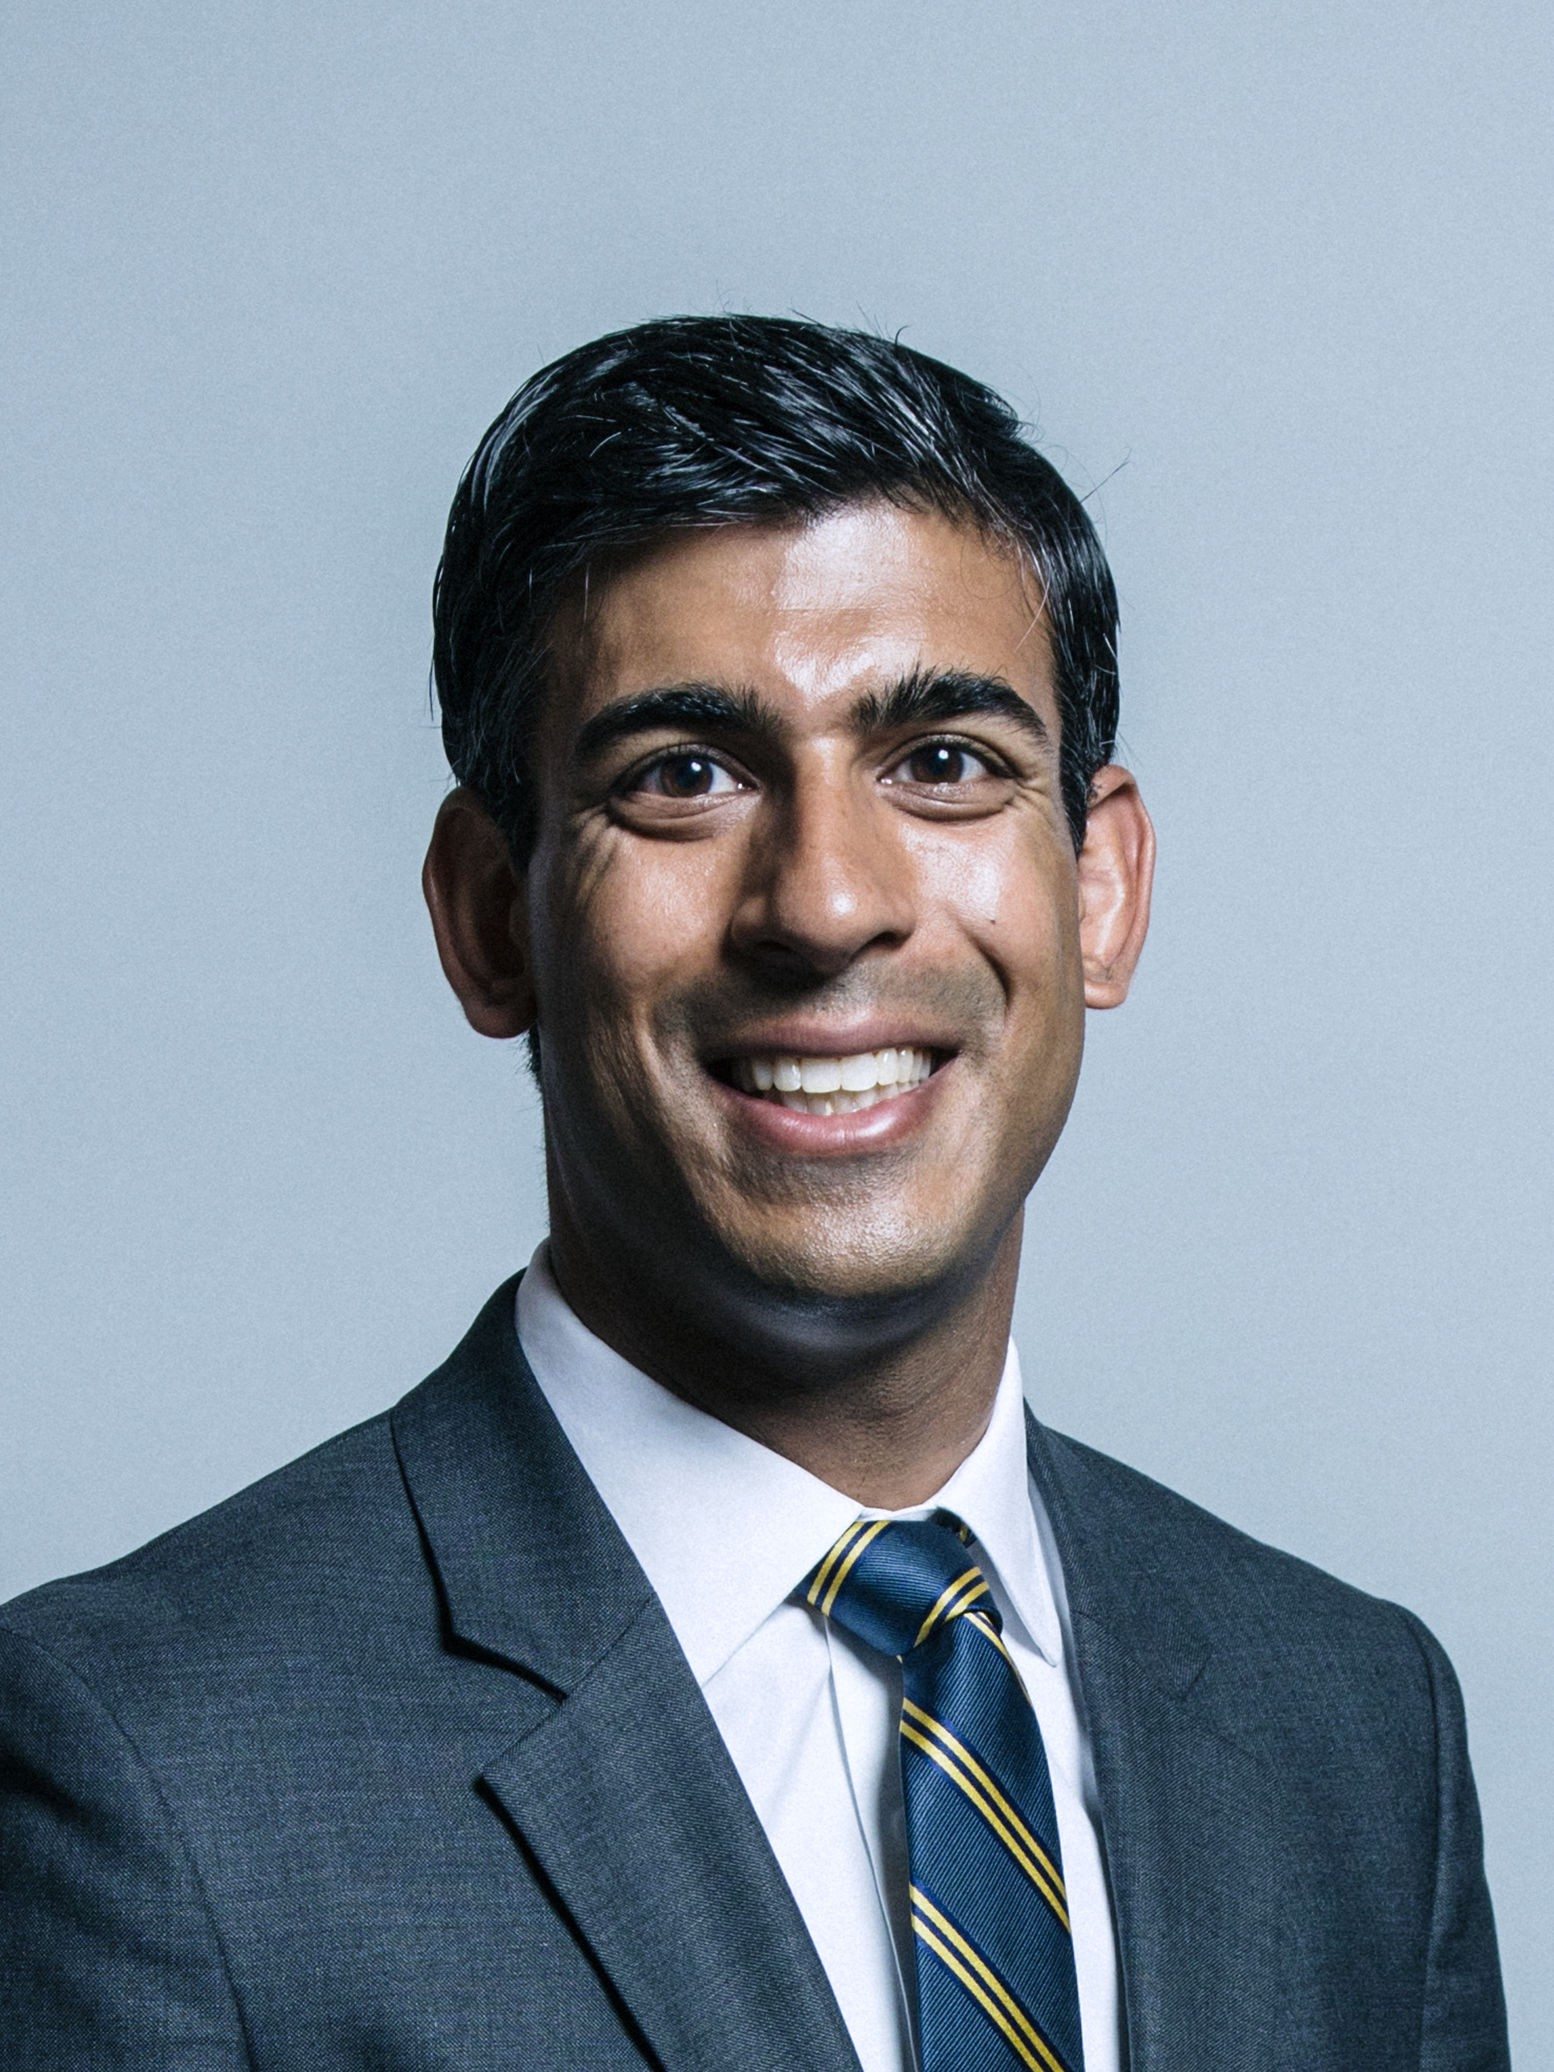 A photo of British Chancellor of the Exchequer Rishi Sunak MP staring at the camera, smiling and wearing a business suit